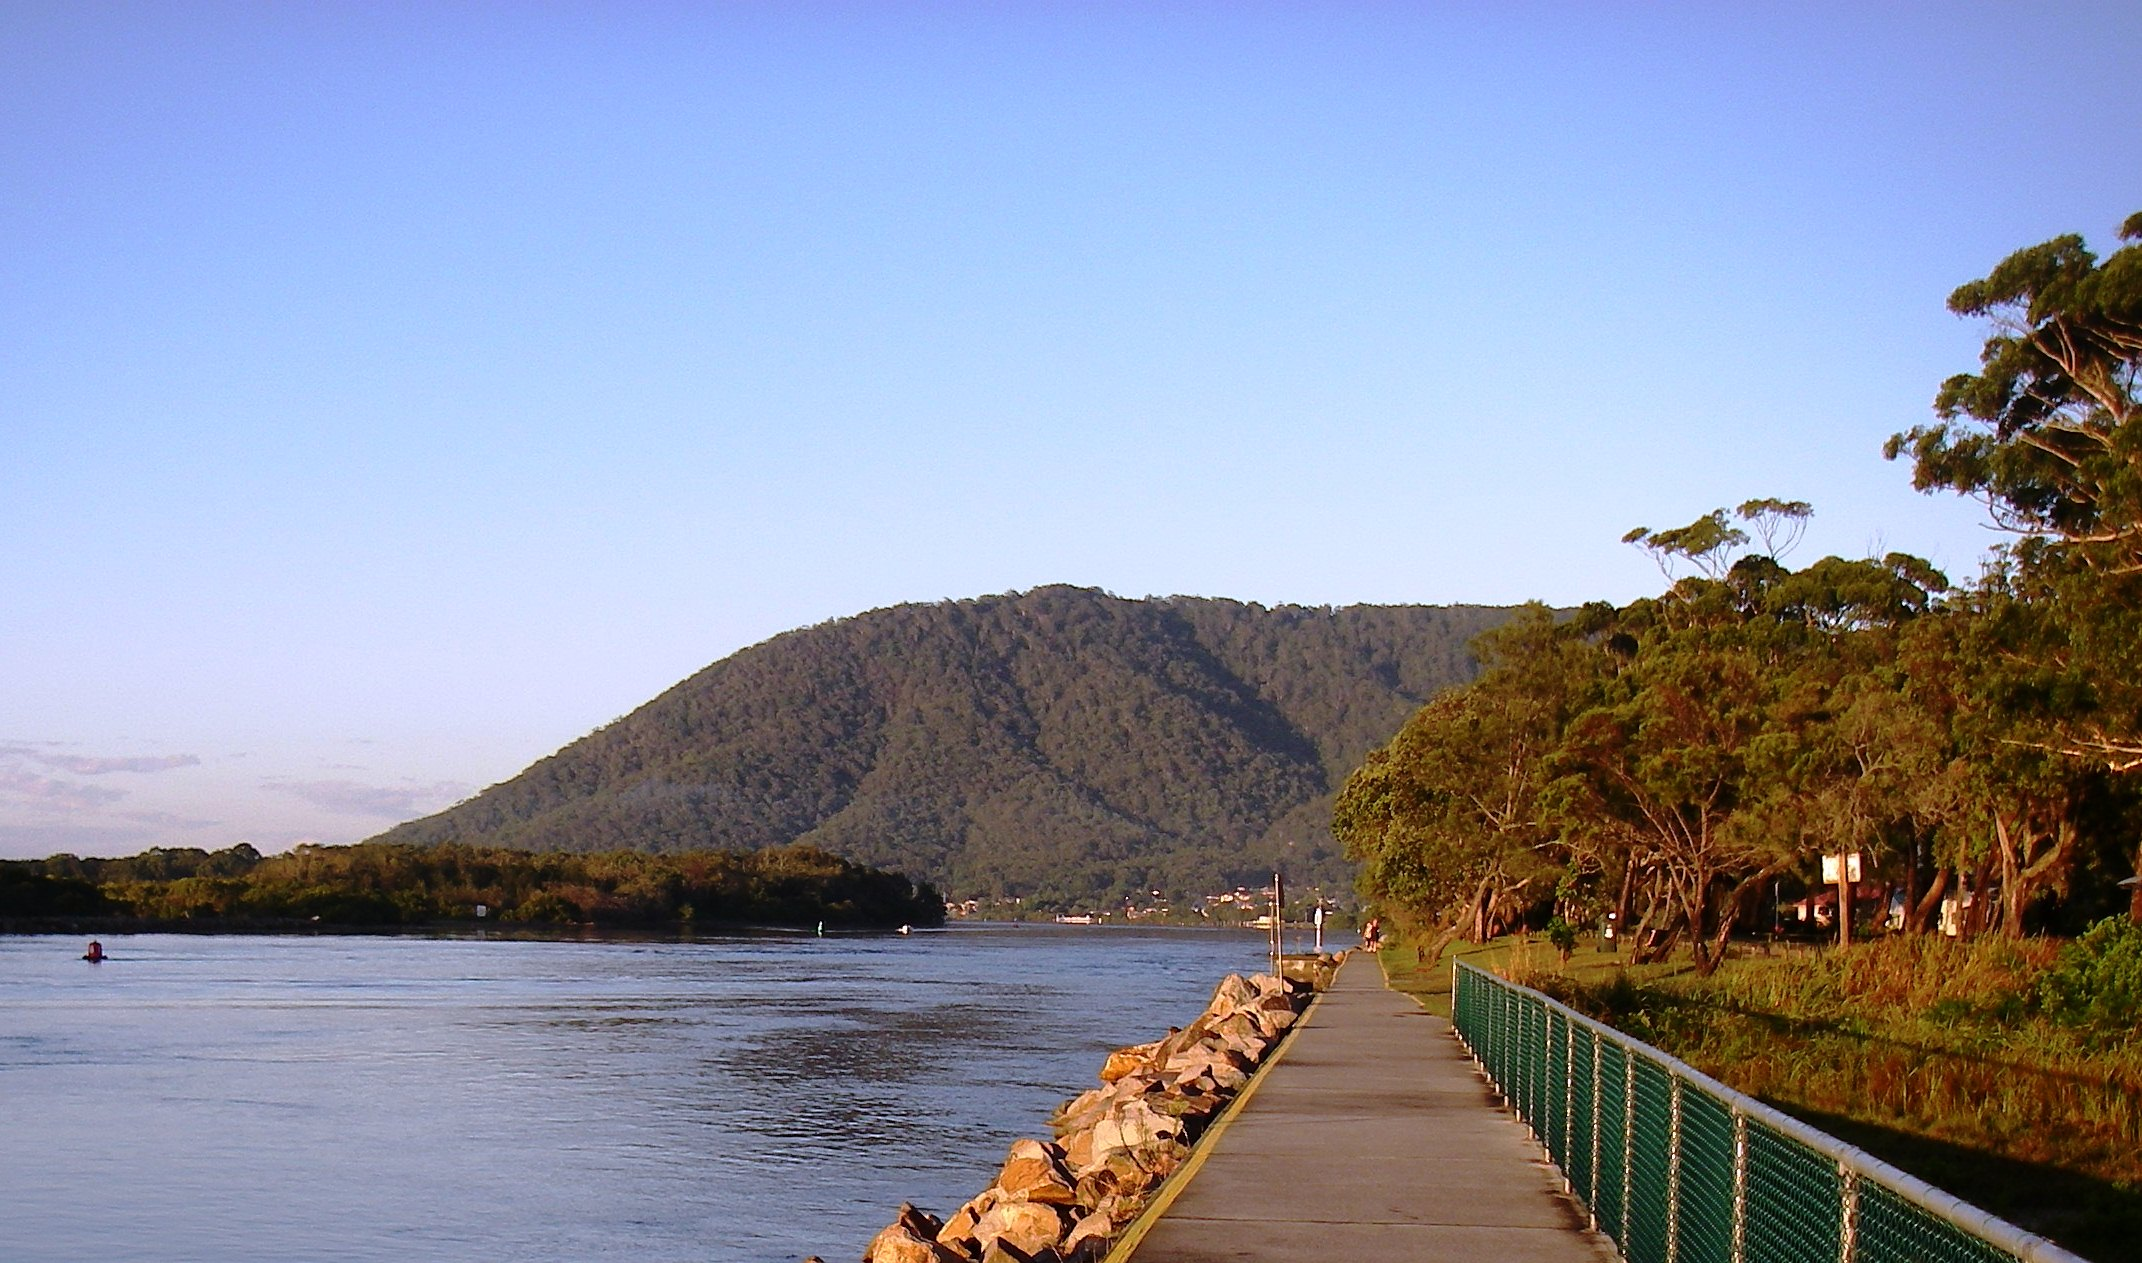 Water views along the Hawkesbury section of the Great North Walk